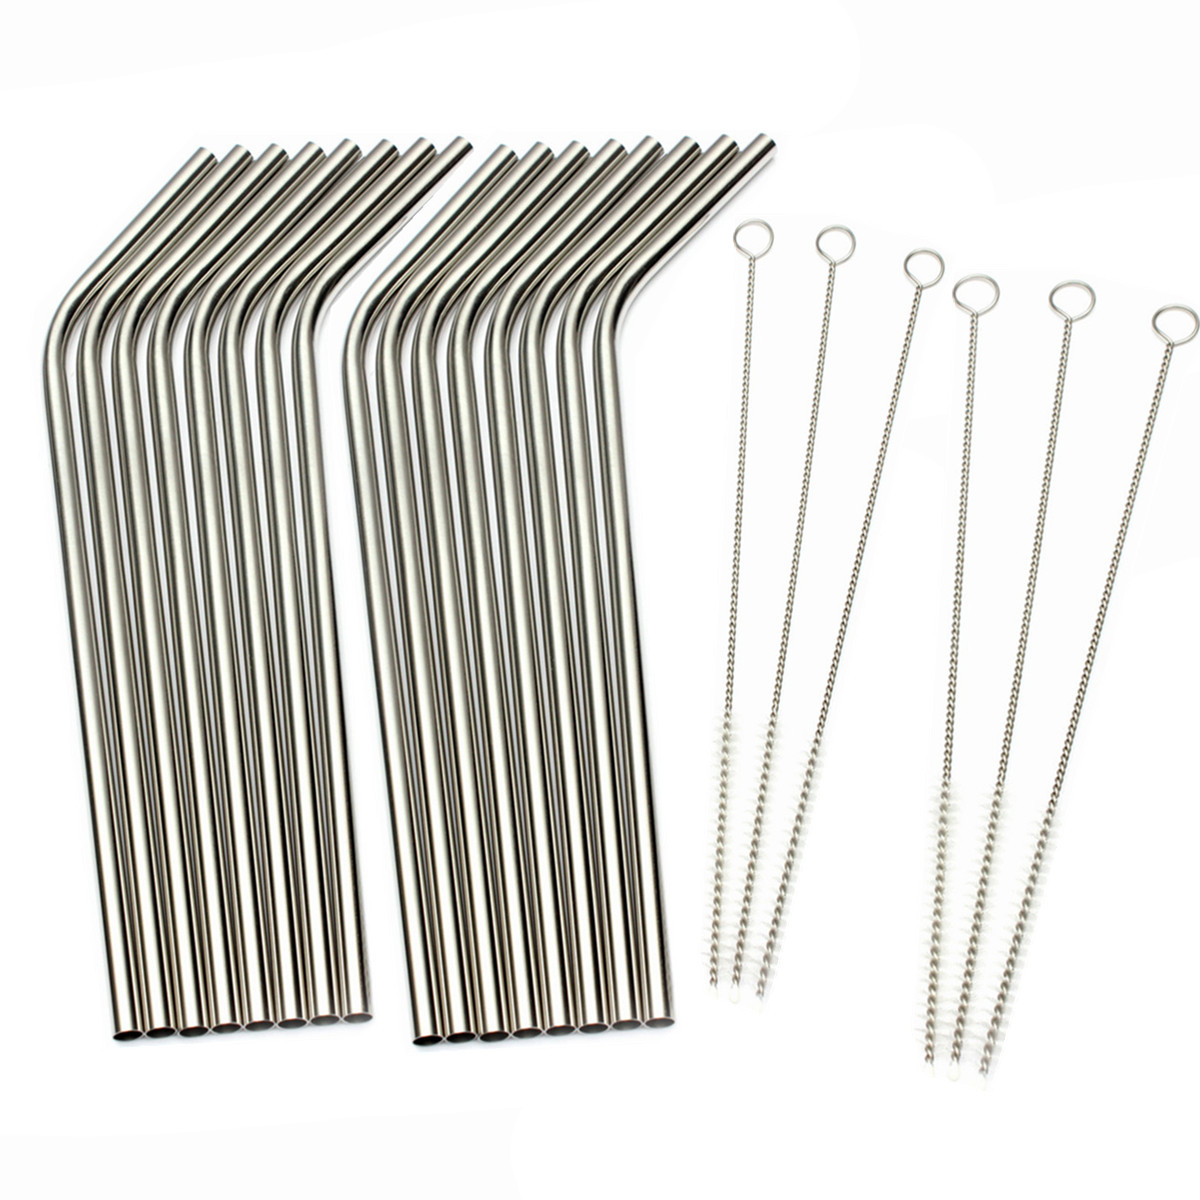 16 Bend LONG Stainless Steel Drink Straws + 6 Cleaning Brush Kit Drinking Straw Metal Washable Reusable NON-TOXIC Unbreakable